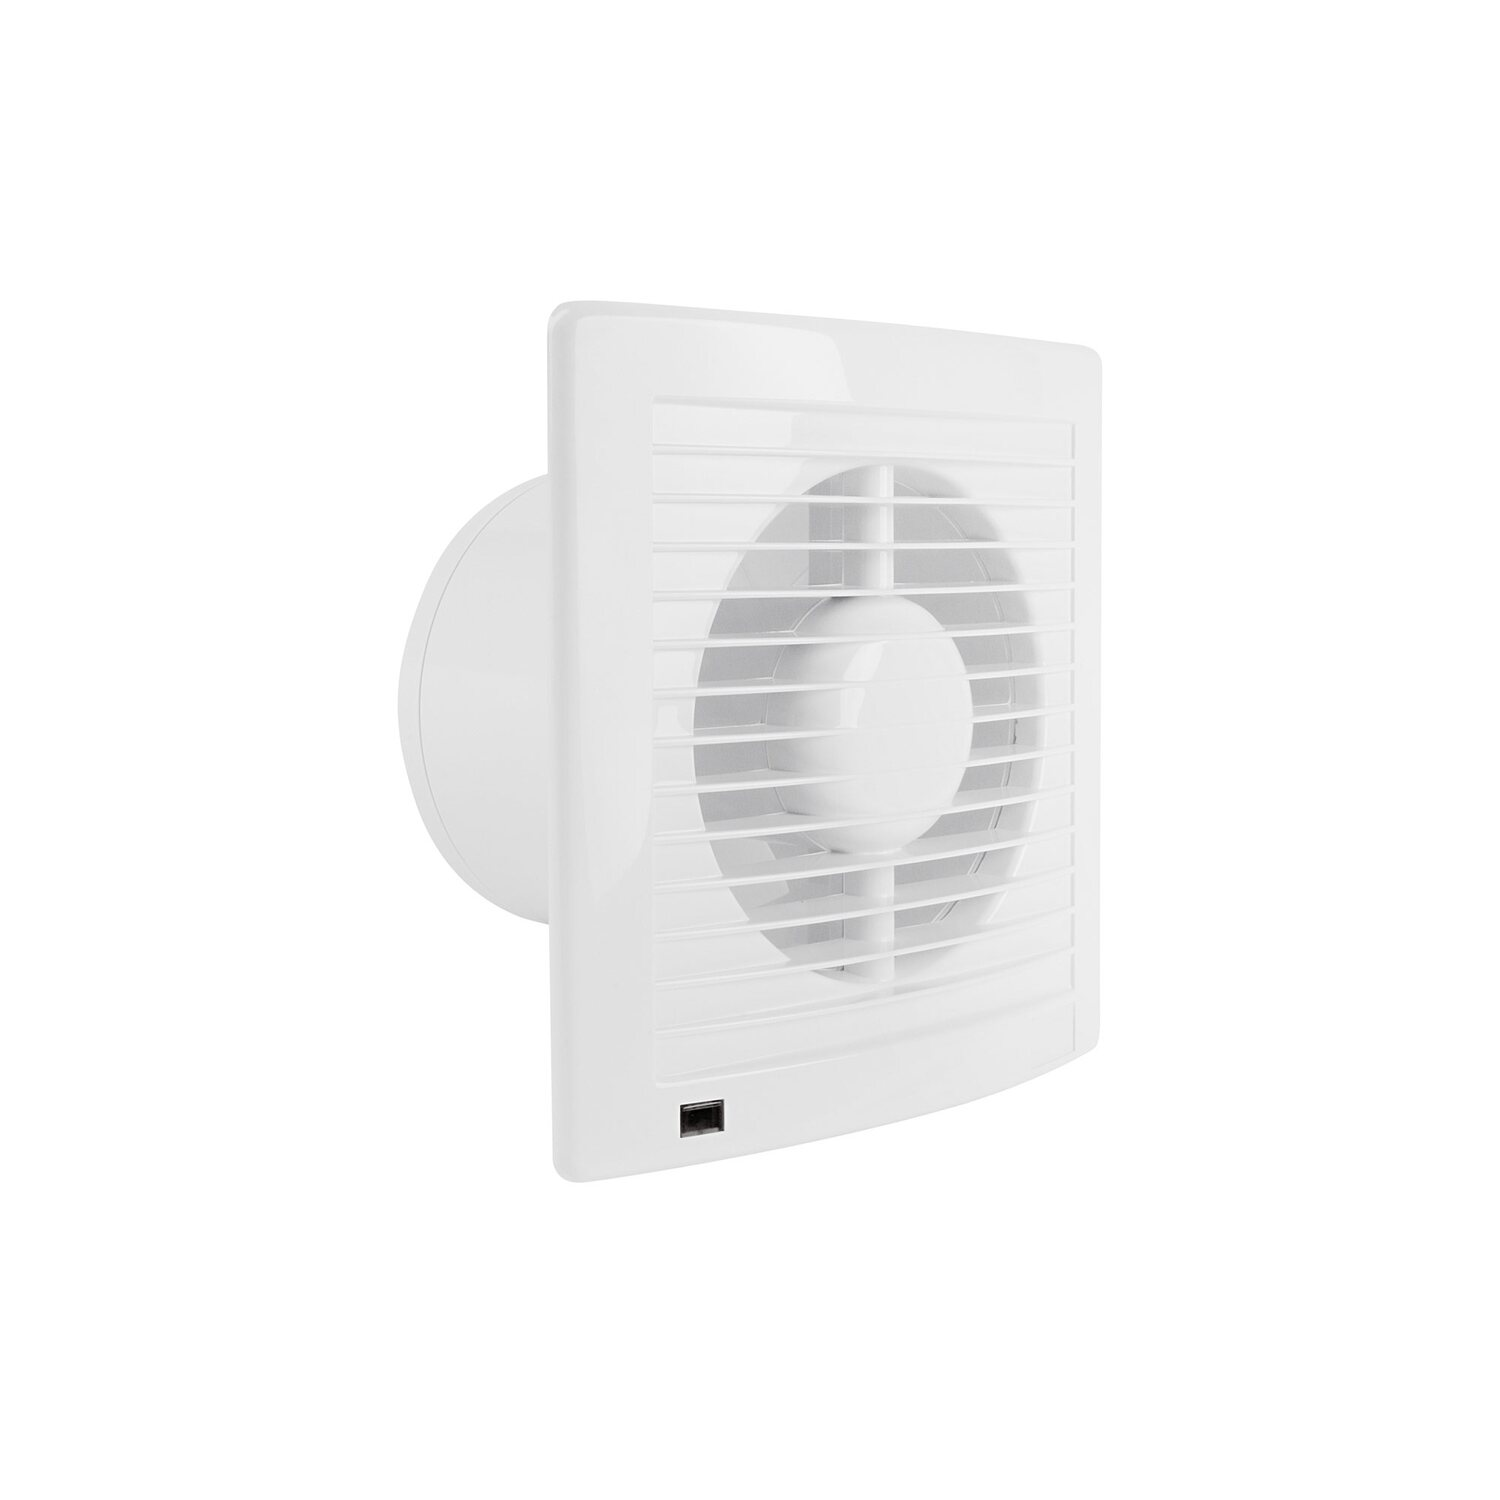 OBI Ventilator Air Style System 100 Mit Eco Timer